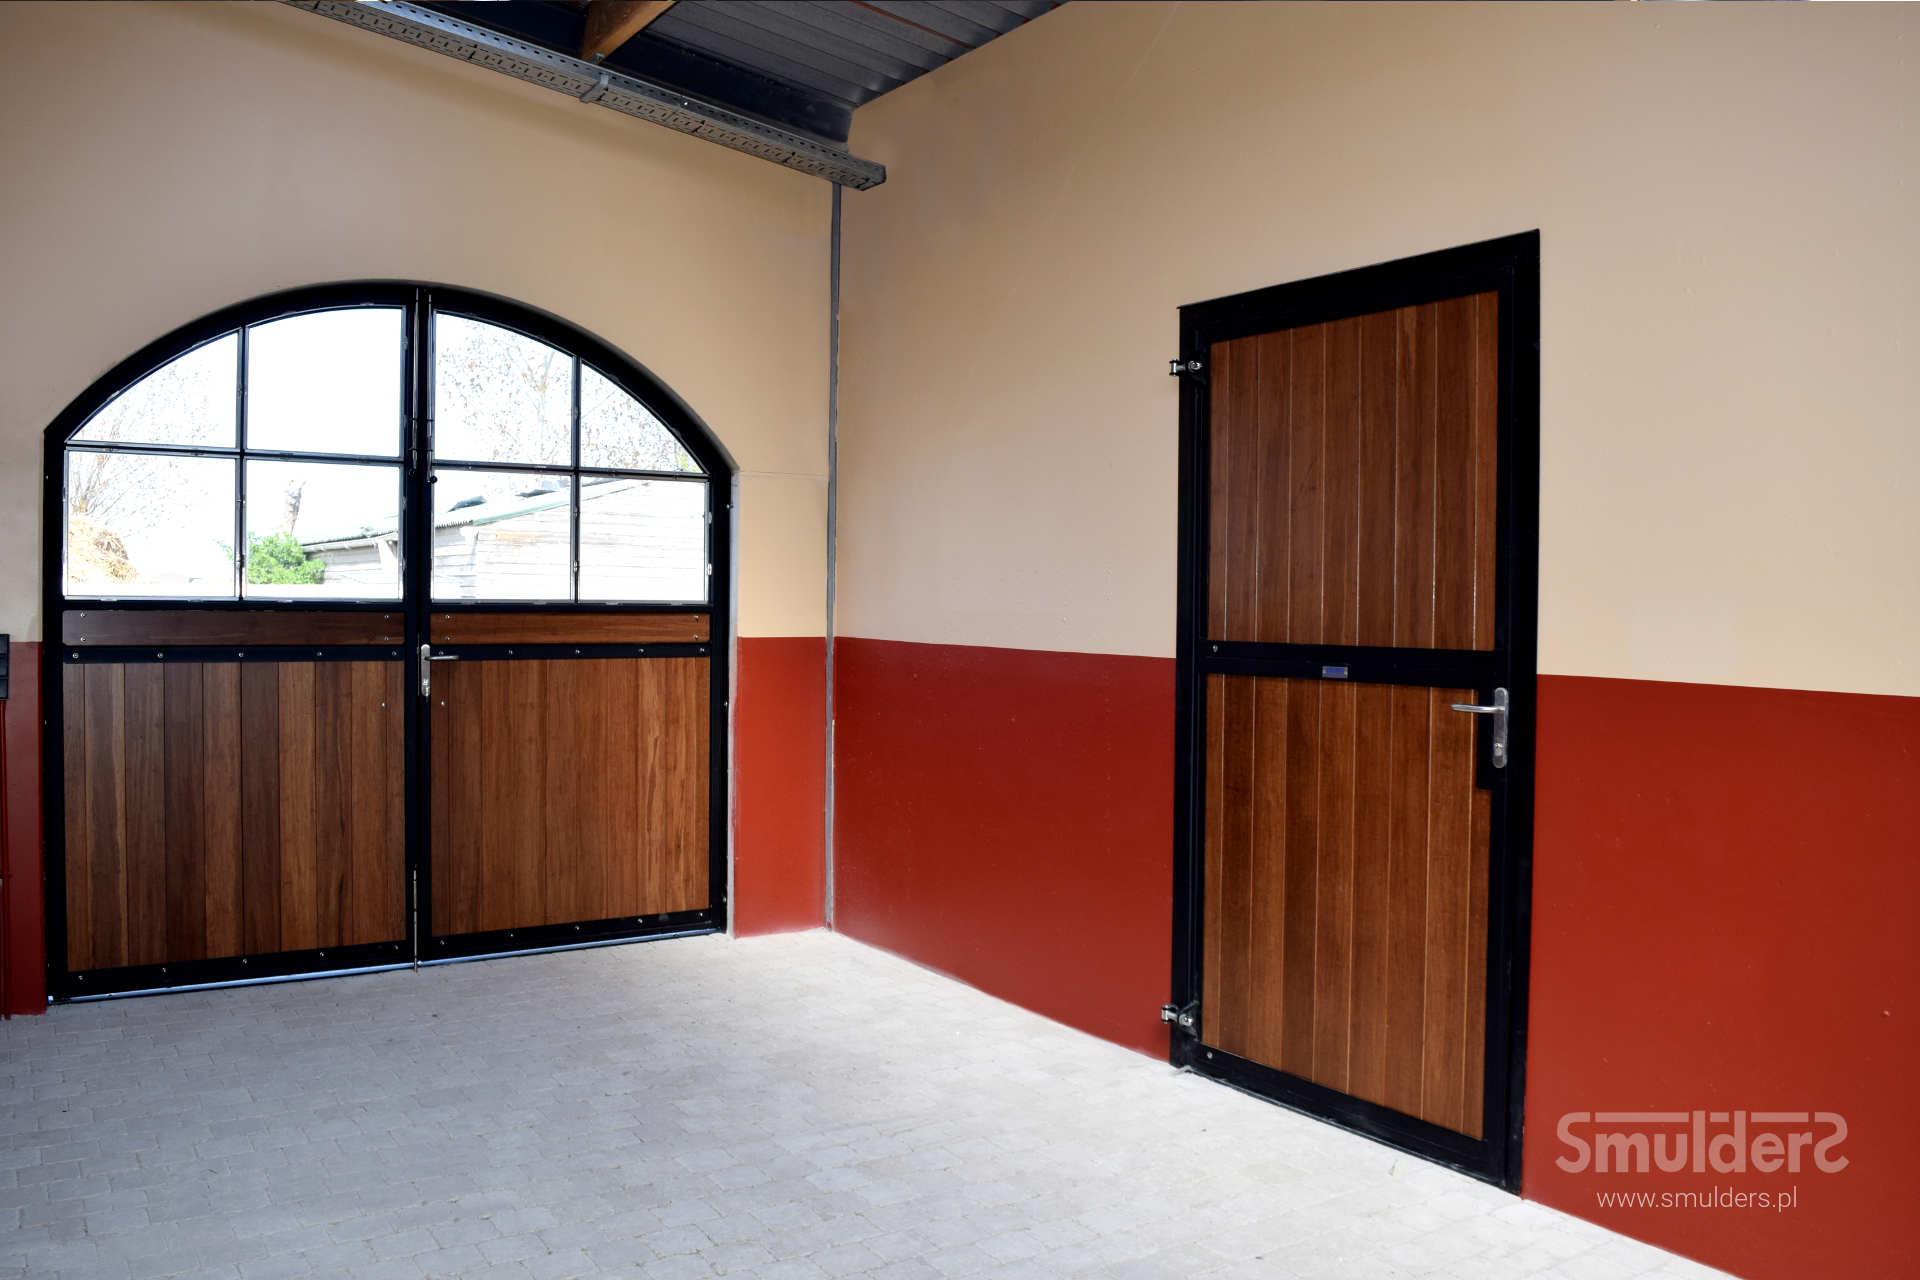 http://www.smulders.pl/wp-content/uploads/2019/03/f005_internal-stables_windsor_doors_windows_barn-doors_PRSH_SMULDERS_PL.jpg